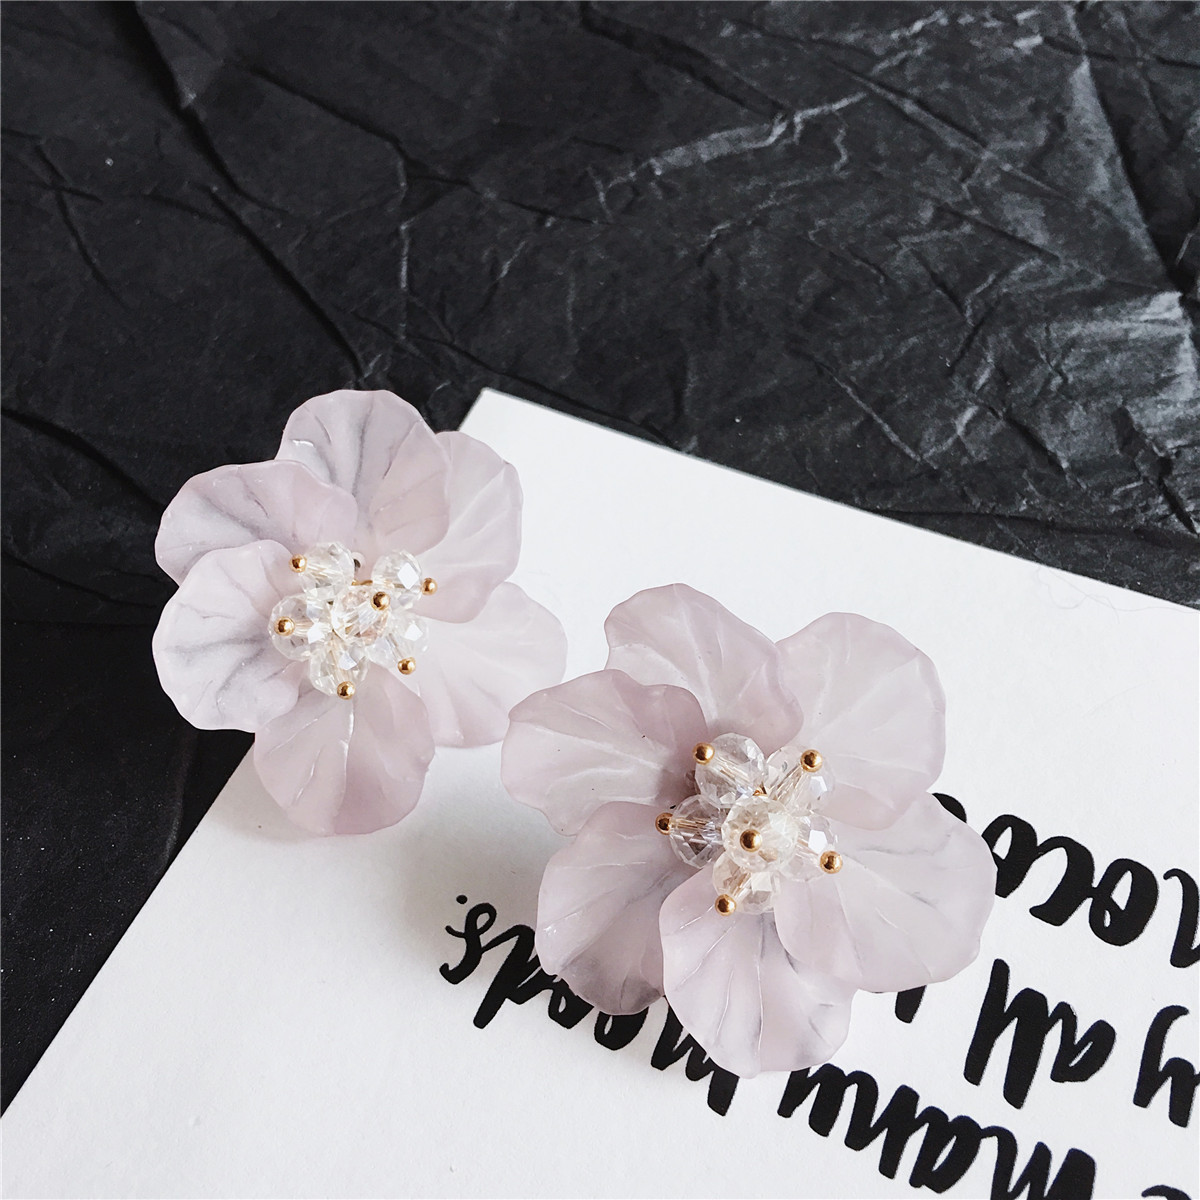 black studs white from tai ying wholesale in year ear the design jewelry for earring new gifts item stud yang fashion flower earrings ji